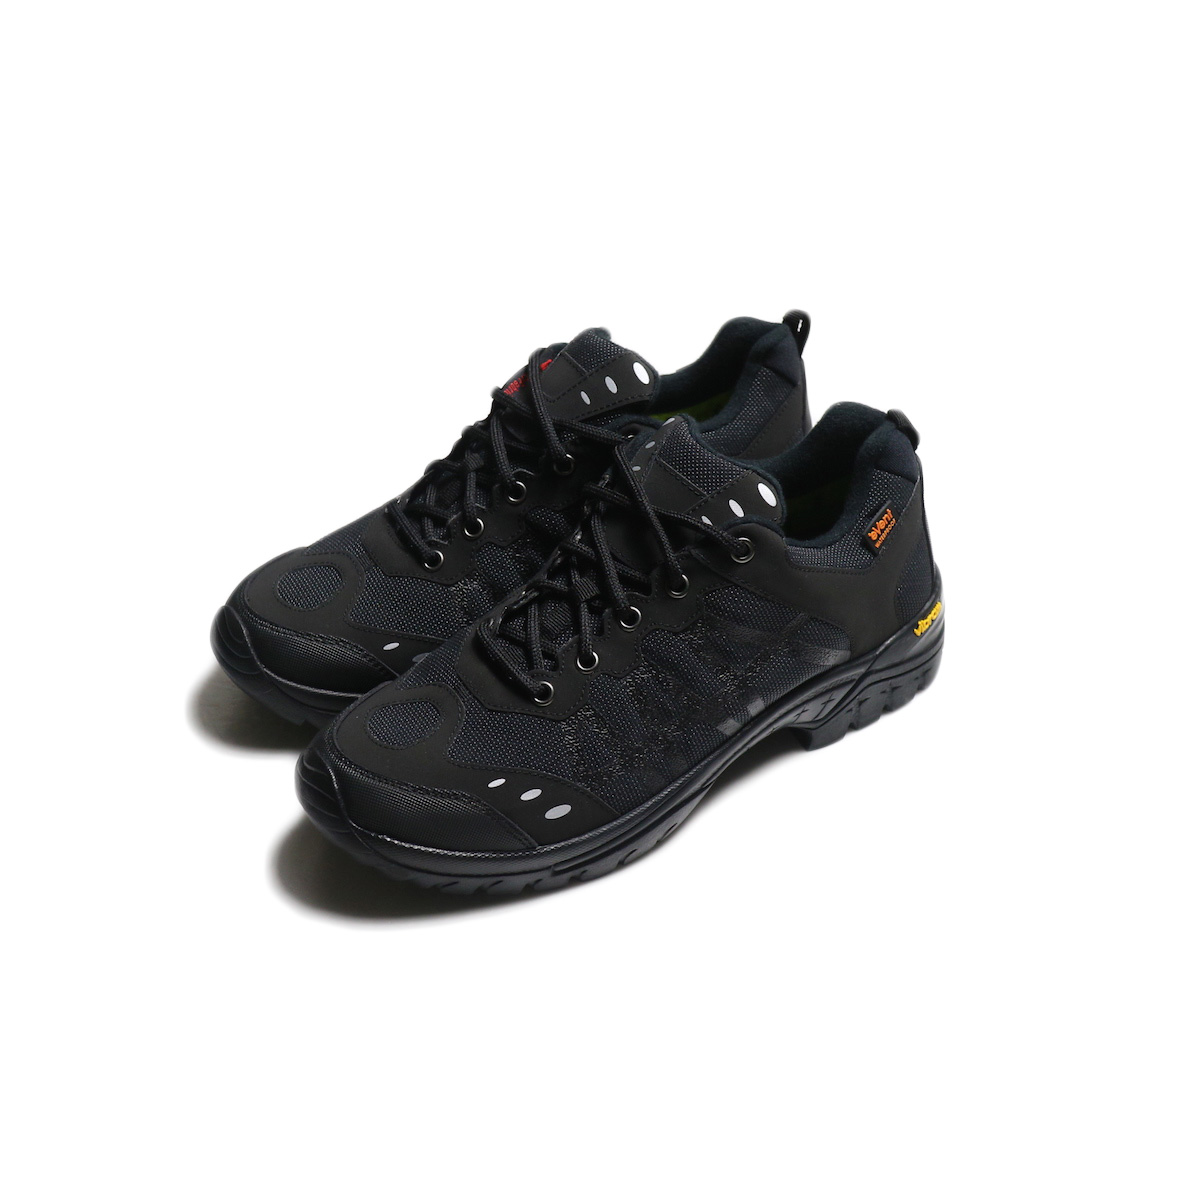 REPRODUCTION OF FOUND / RUSSIAN MILITARY TRAINER (Charcoal/Black)